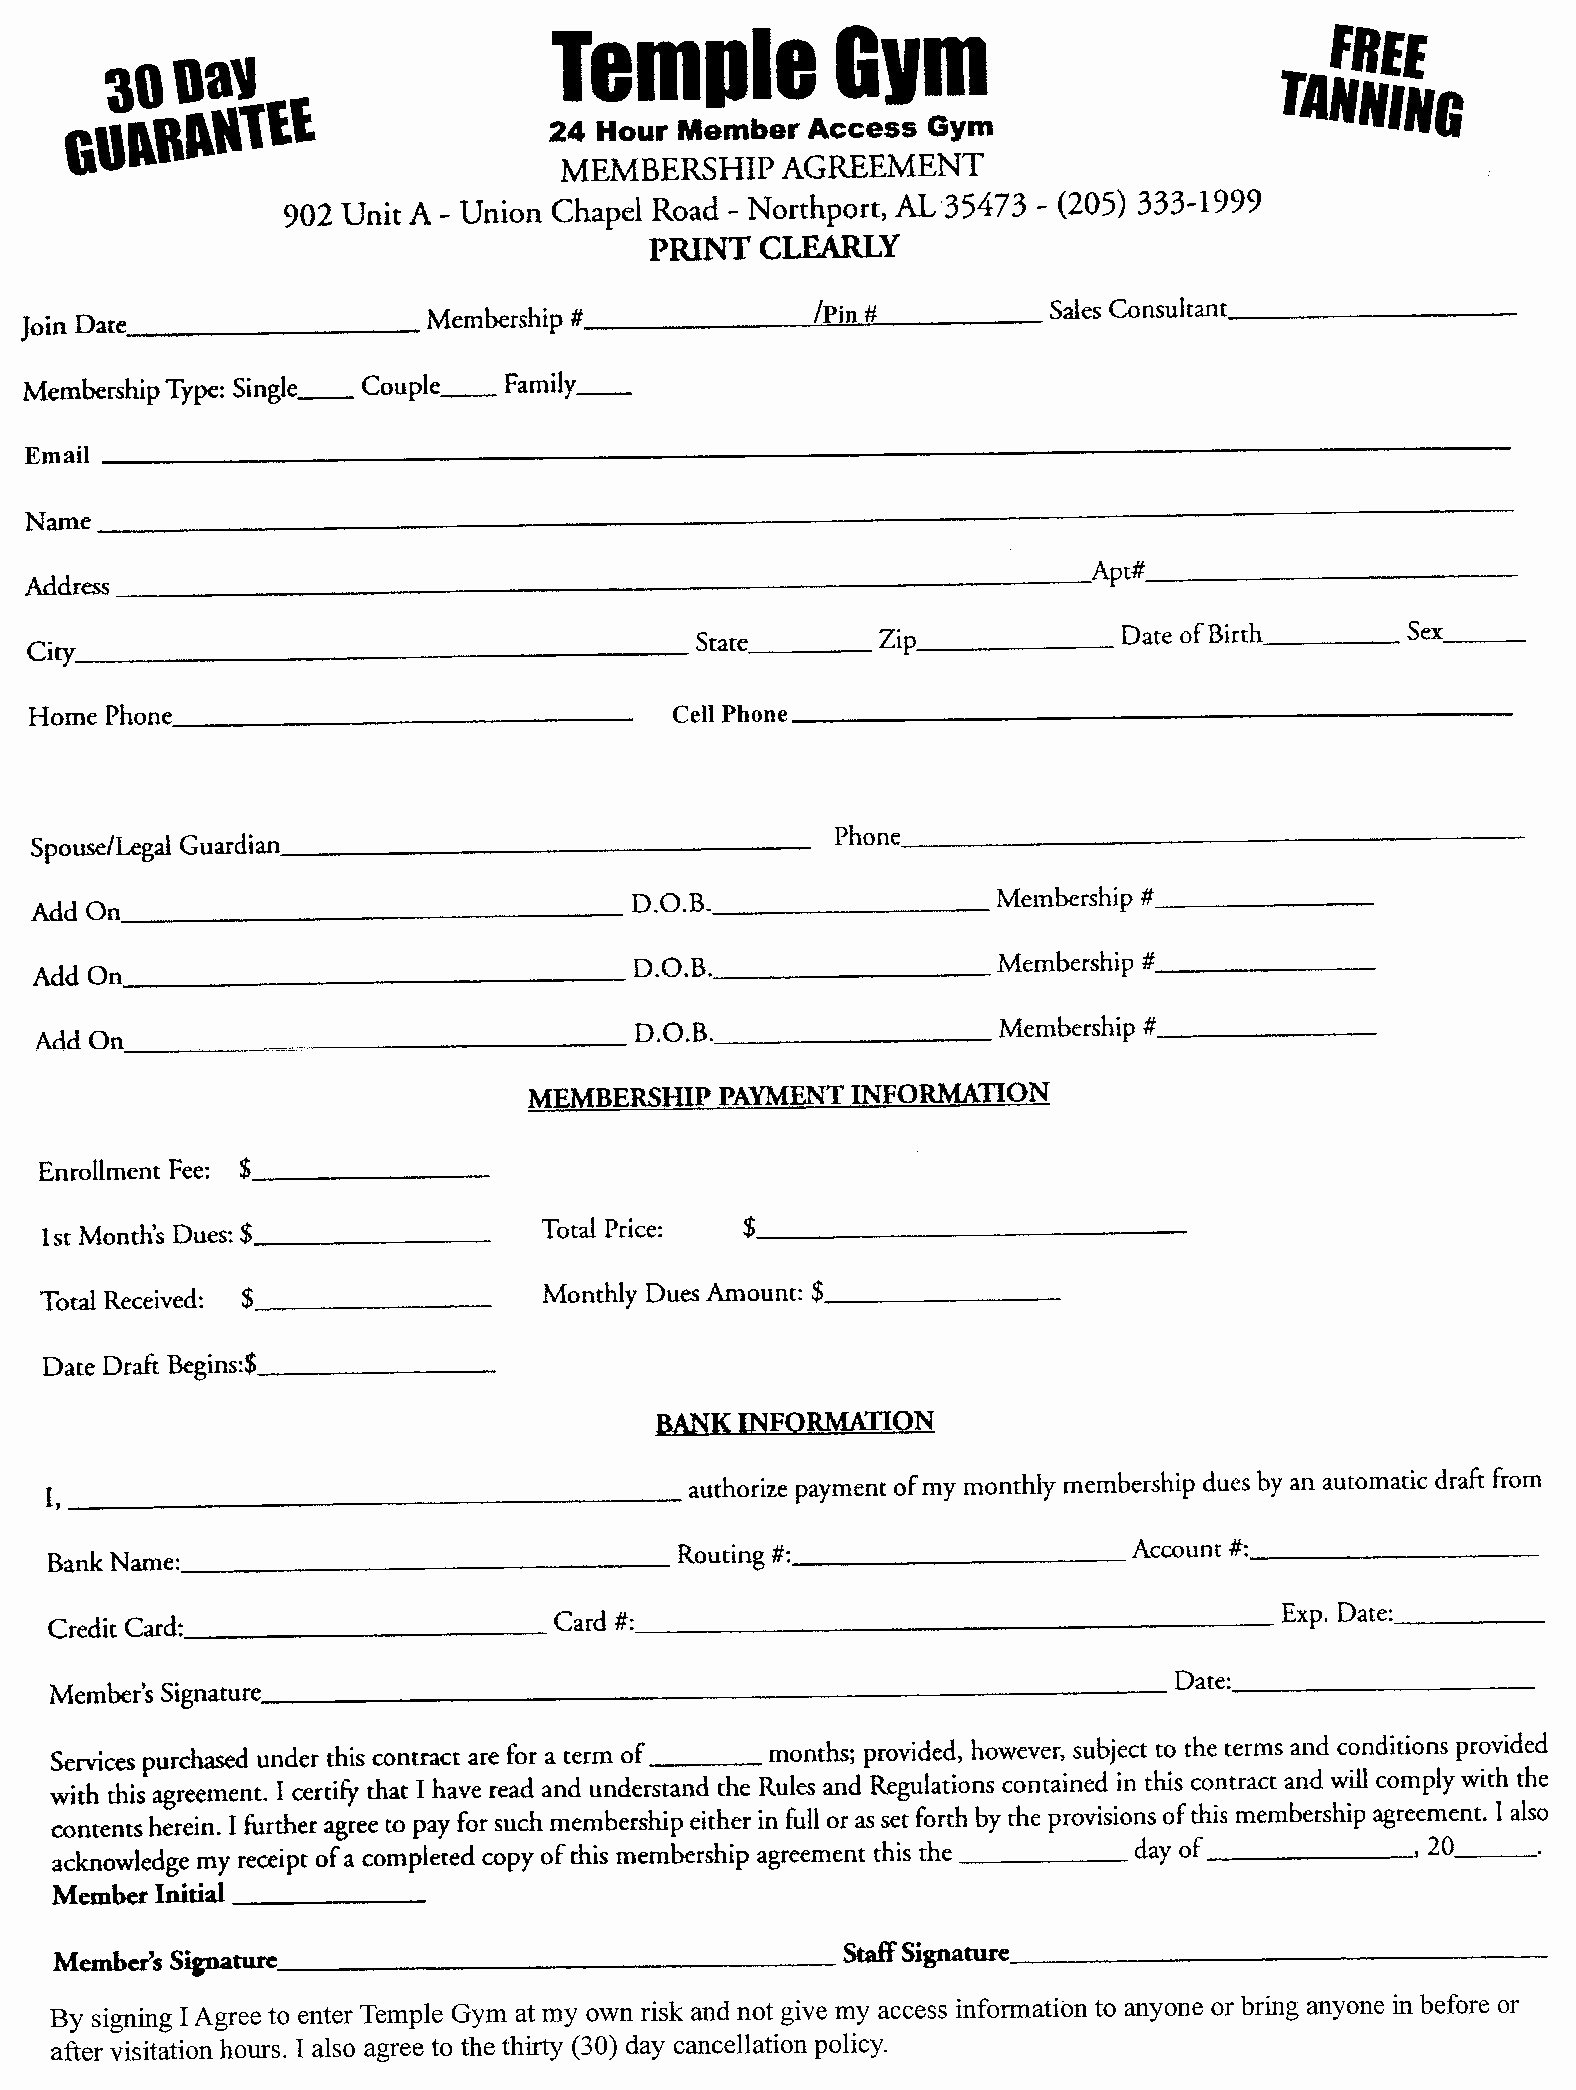 Gym Membership Contract Template Inspirational Free Fitness Center Legal Membership Waiver forms for Gyms